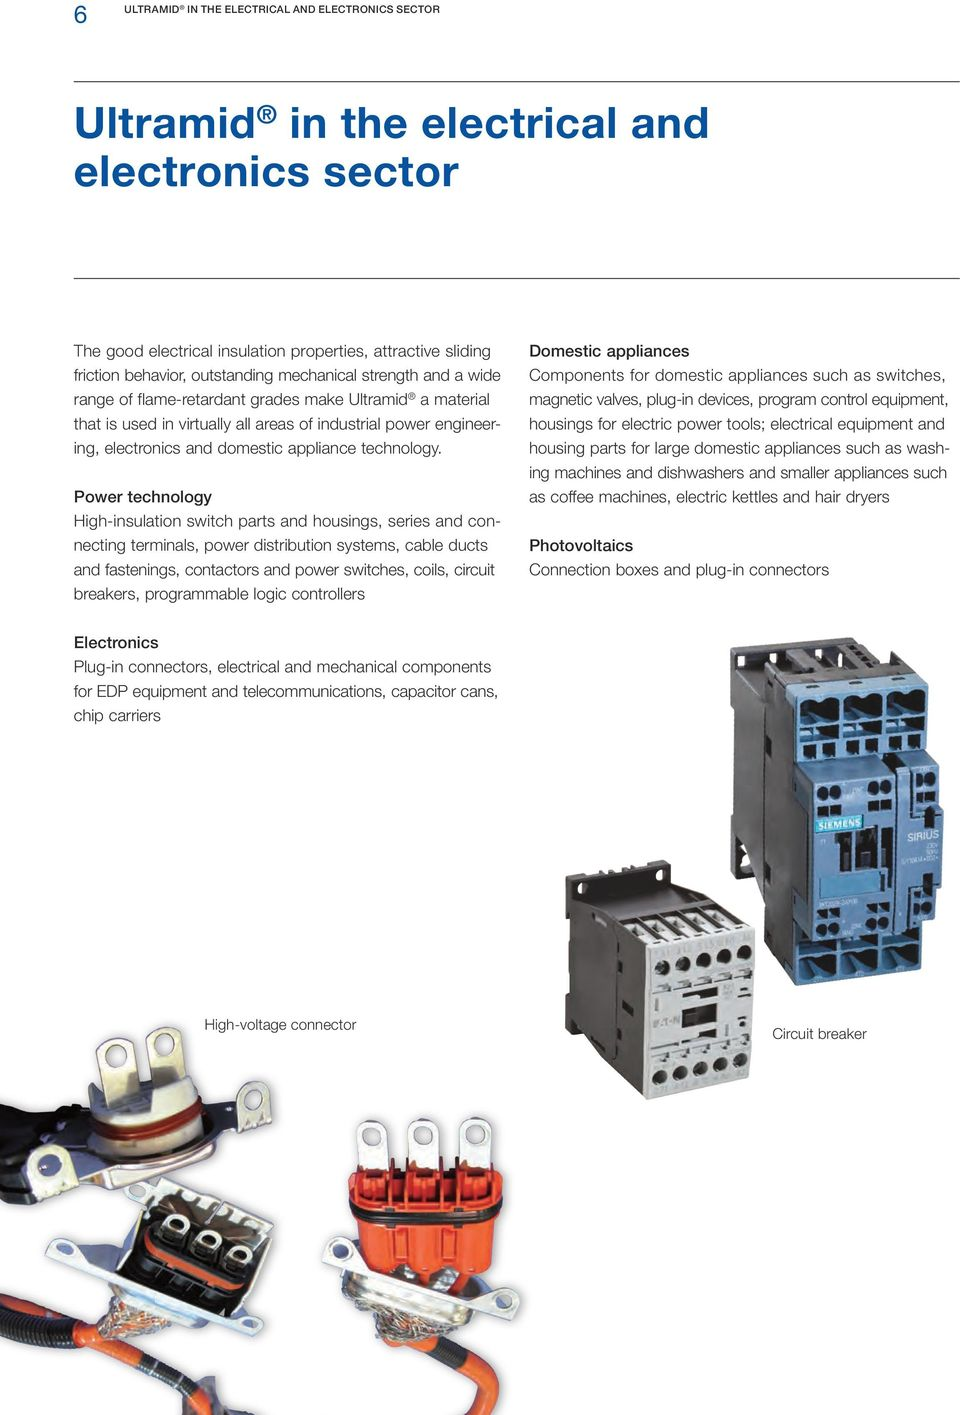 Ultramid Pa Product Brochure In The Web Pdf Wiring Diagram For A Hair Dryer Technology